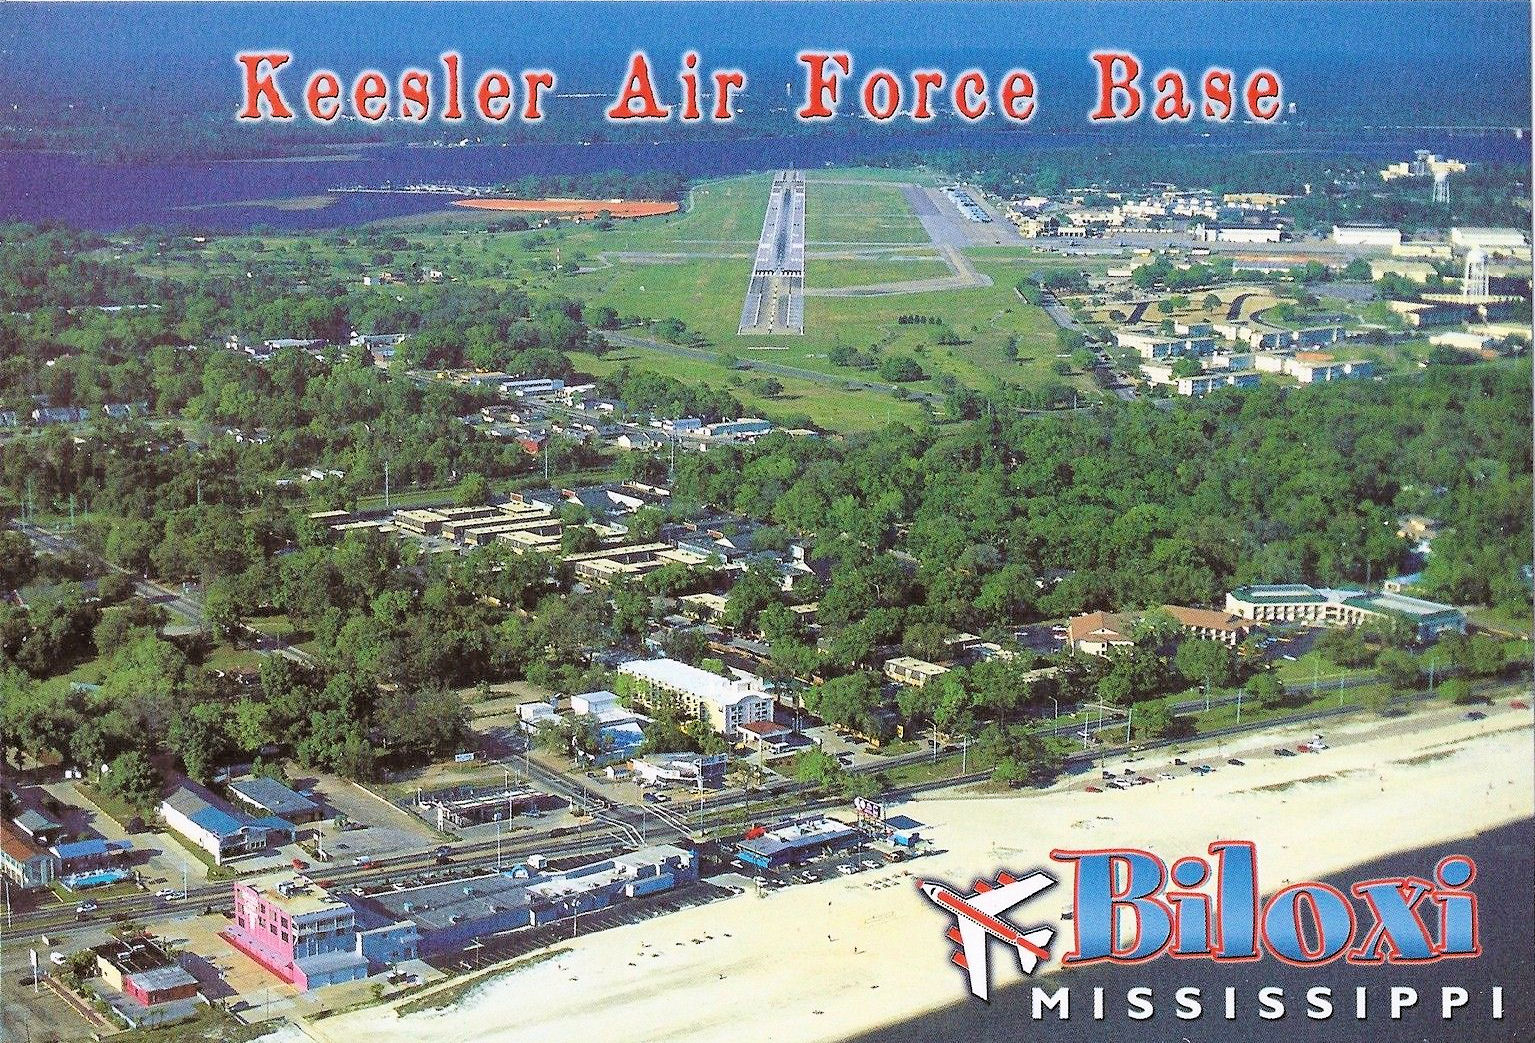 File:Keesler Air Force Base - 1980s Aireal.jpg - Wikimedia Commons